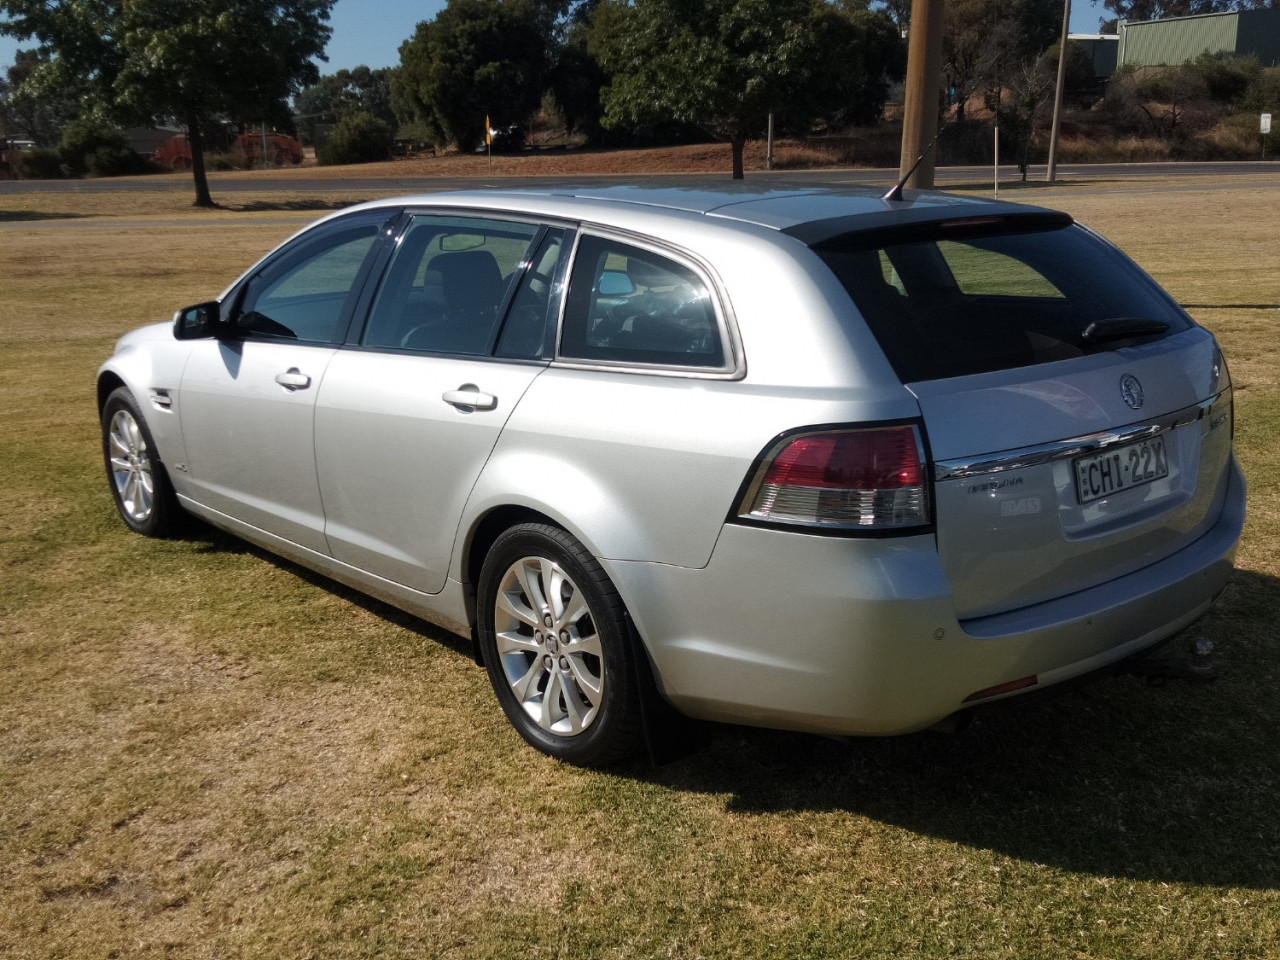 2012 Holden Berlina VE II MY12 Wagon Image 7